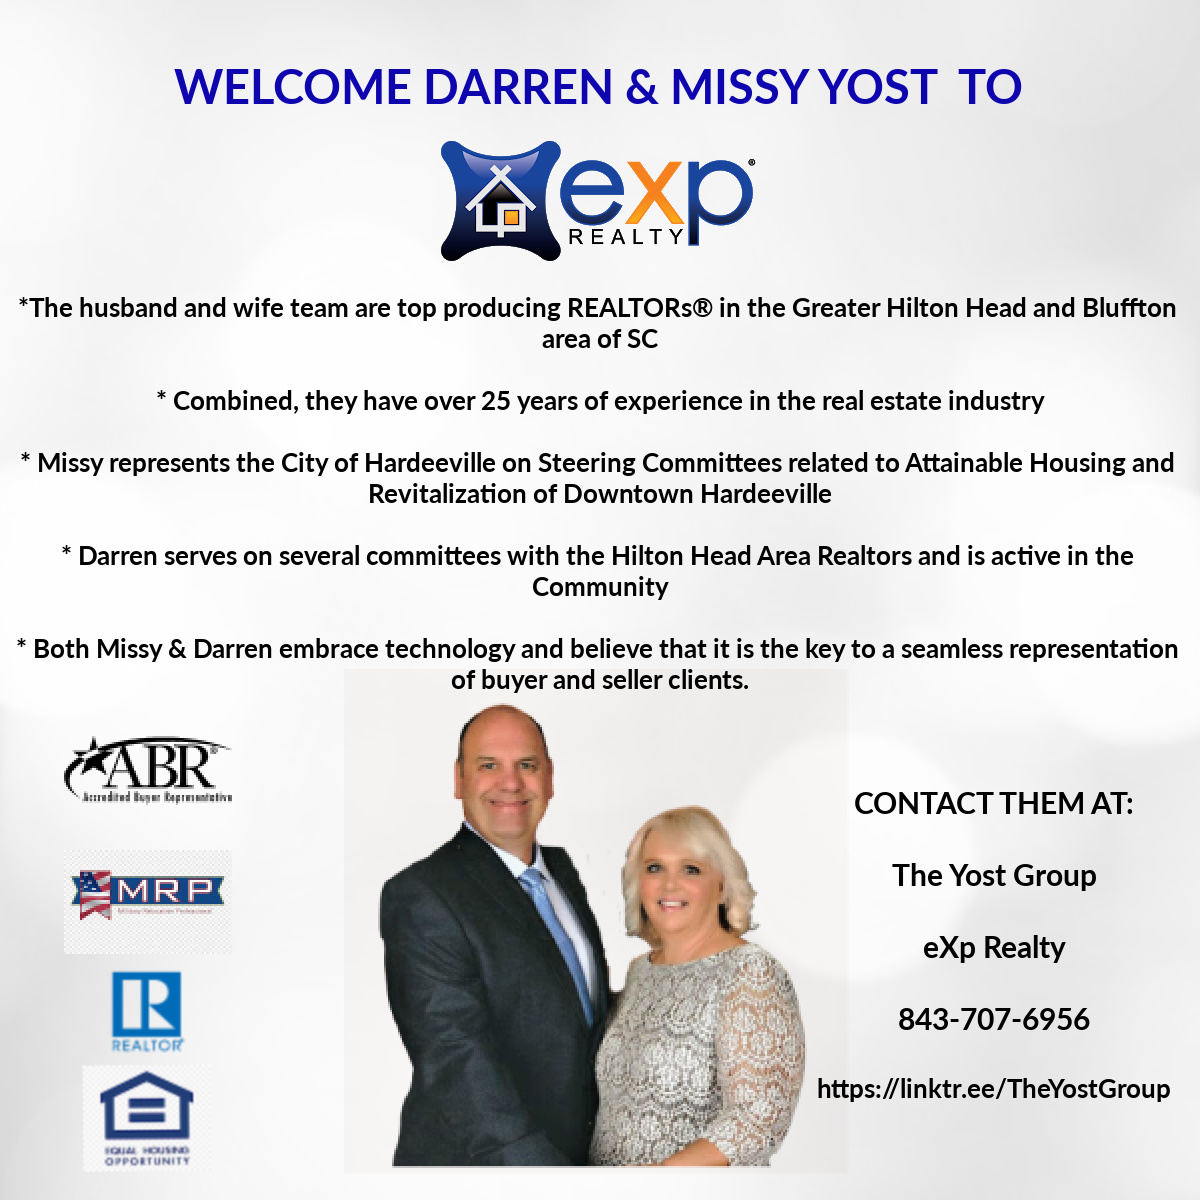 Welcome Darren and Missy Yost to eXp Realty